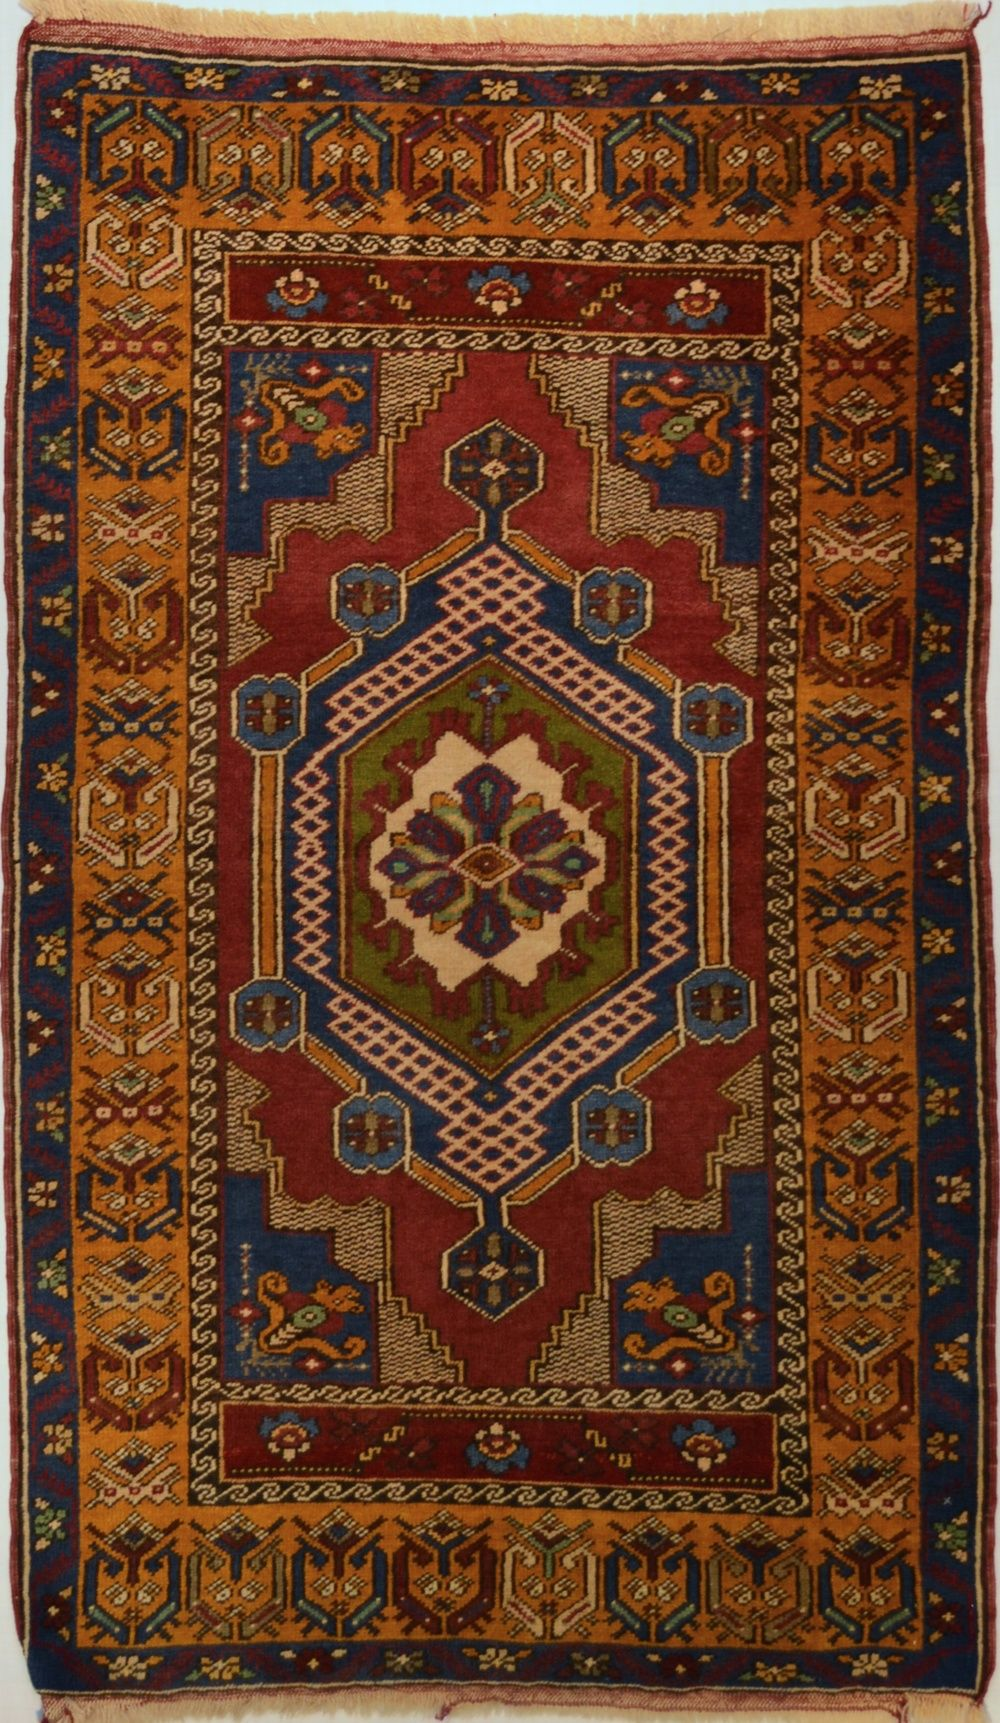 Yahyali Rug Persian Rug Designs Antique Persian Rug Rugs On Carpet